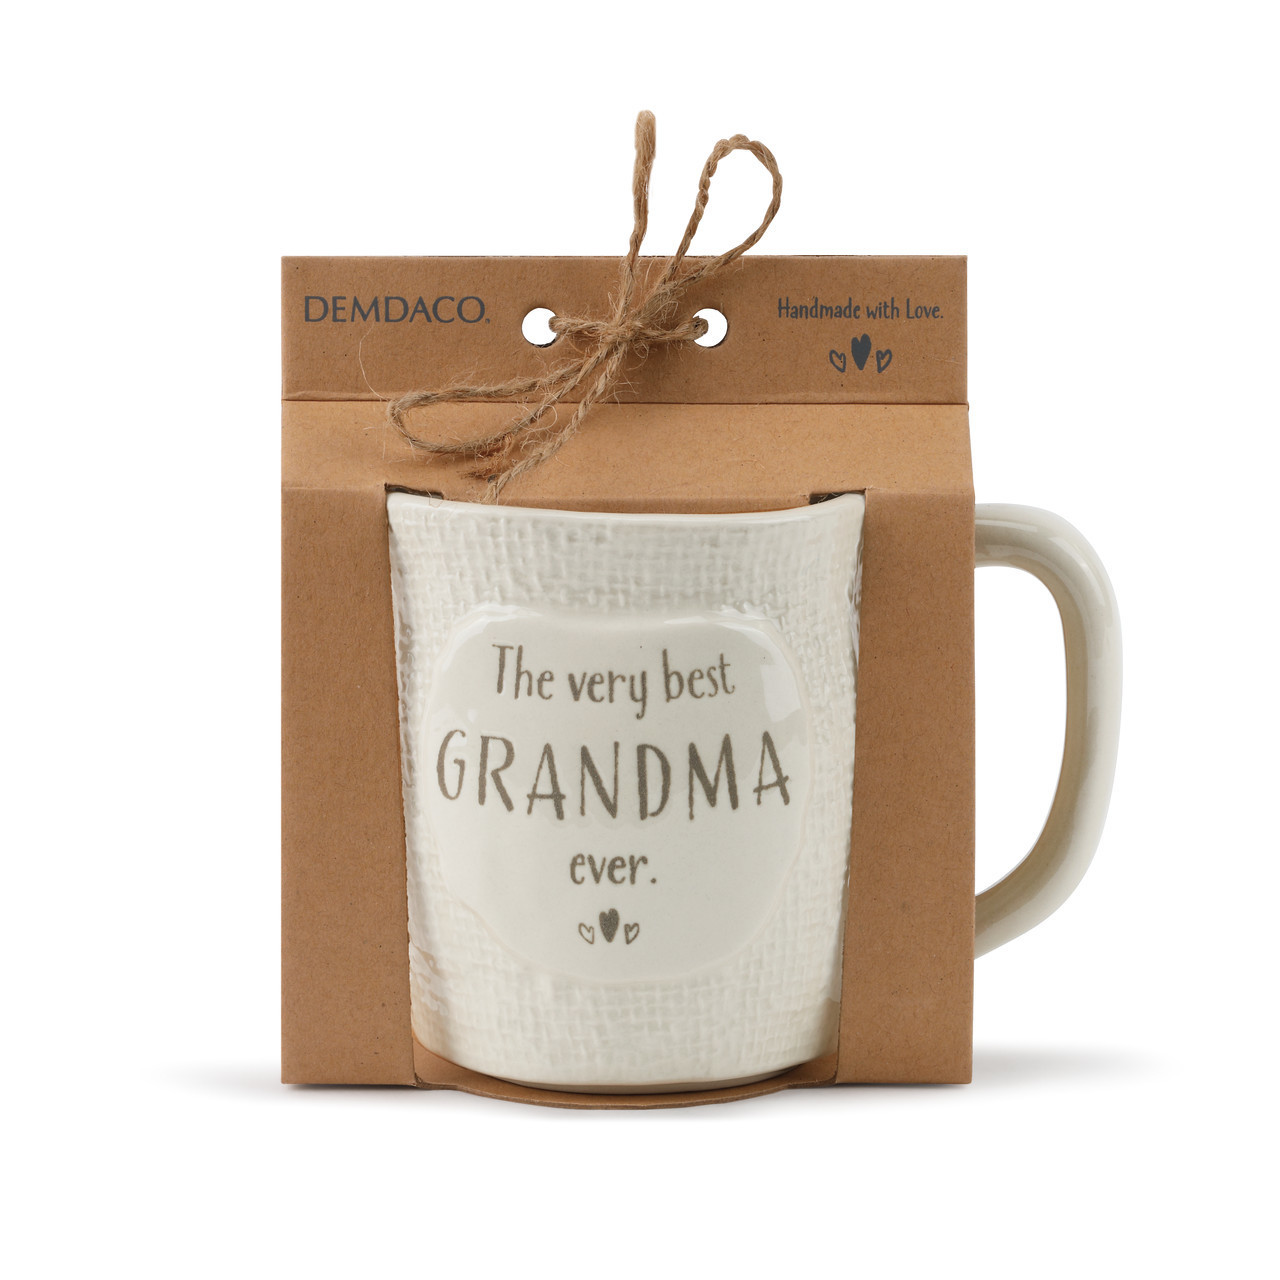 Inspire excitement and wonder with the perfectly playful Welcome to the World, The Very Best Mug. This unique ceramic mug features a classic textured cream appearance that is perfect for any new or existing dad, grandma. grandpa or aunt.